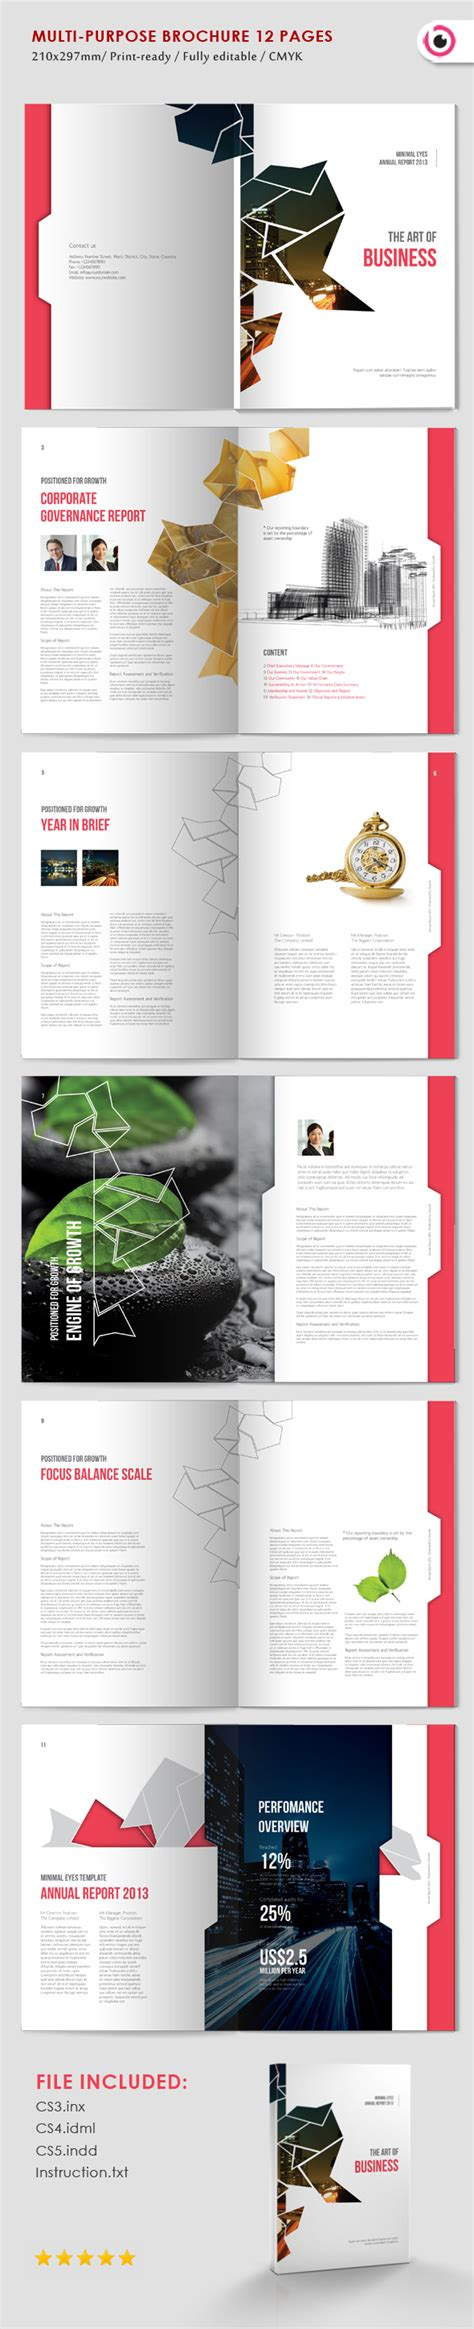 Multi Page Brochure Template by The Of Business On Behance